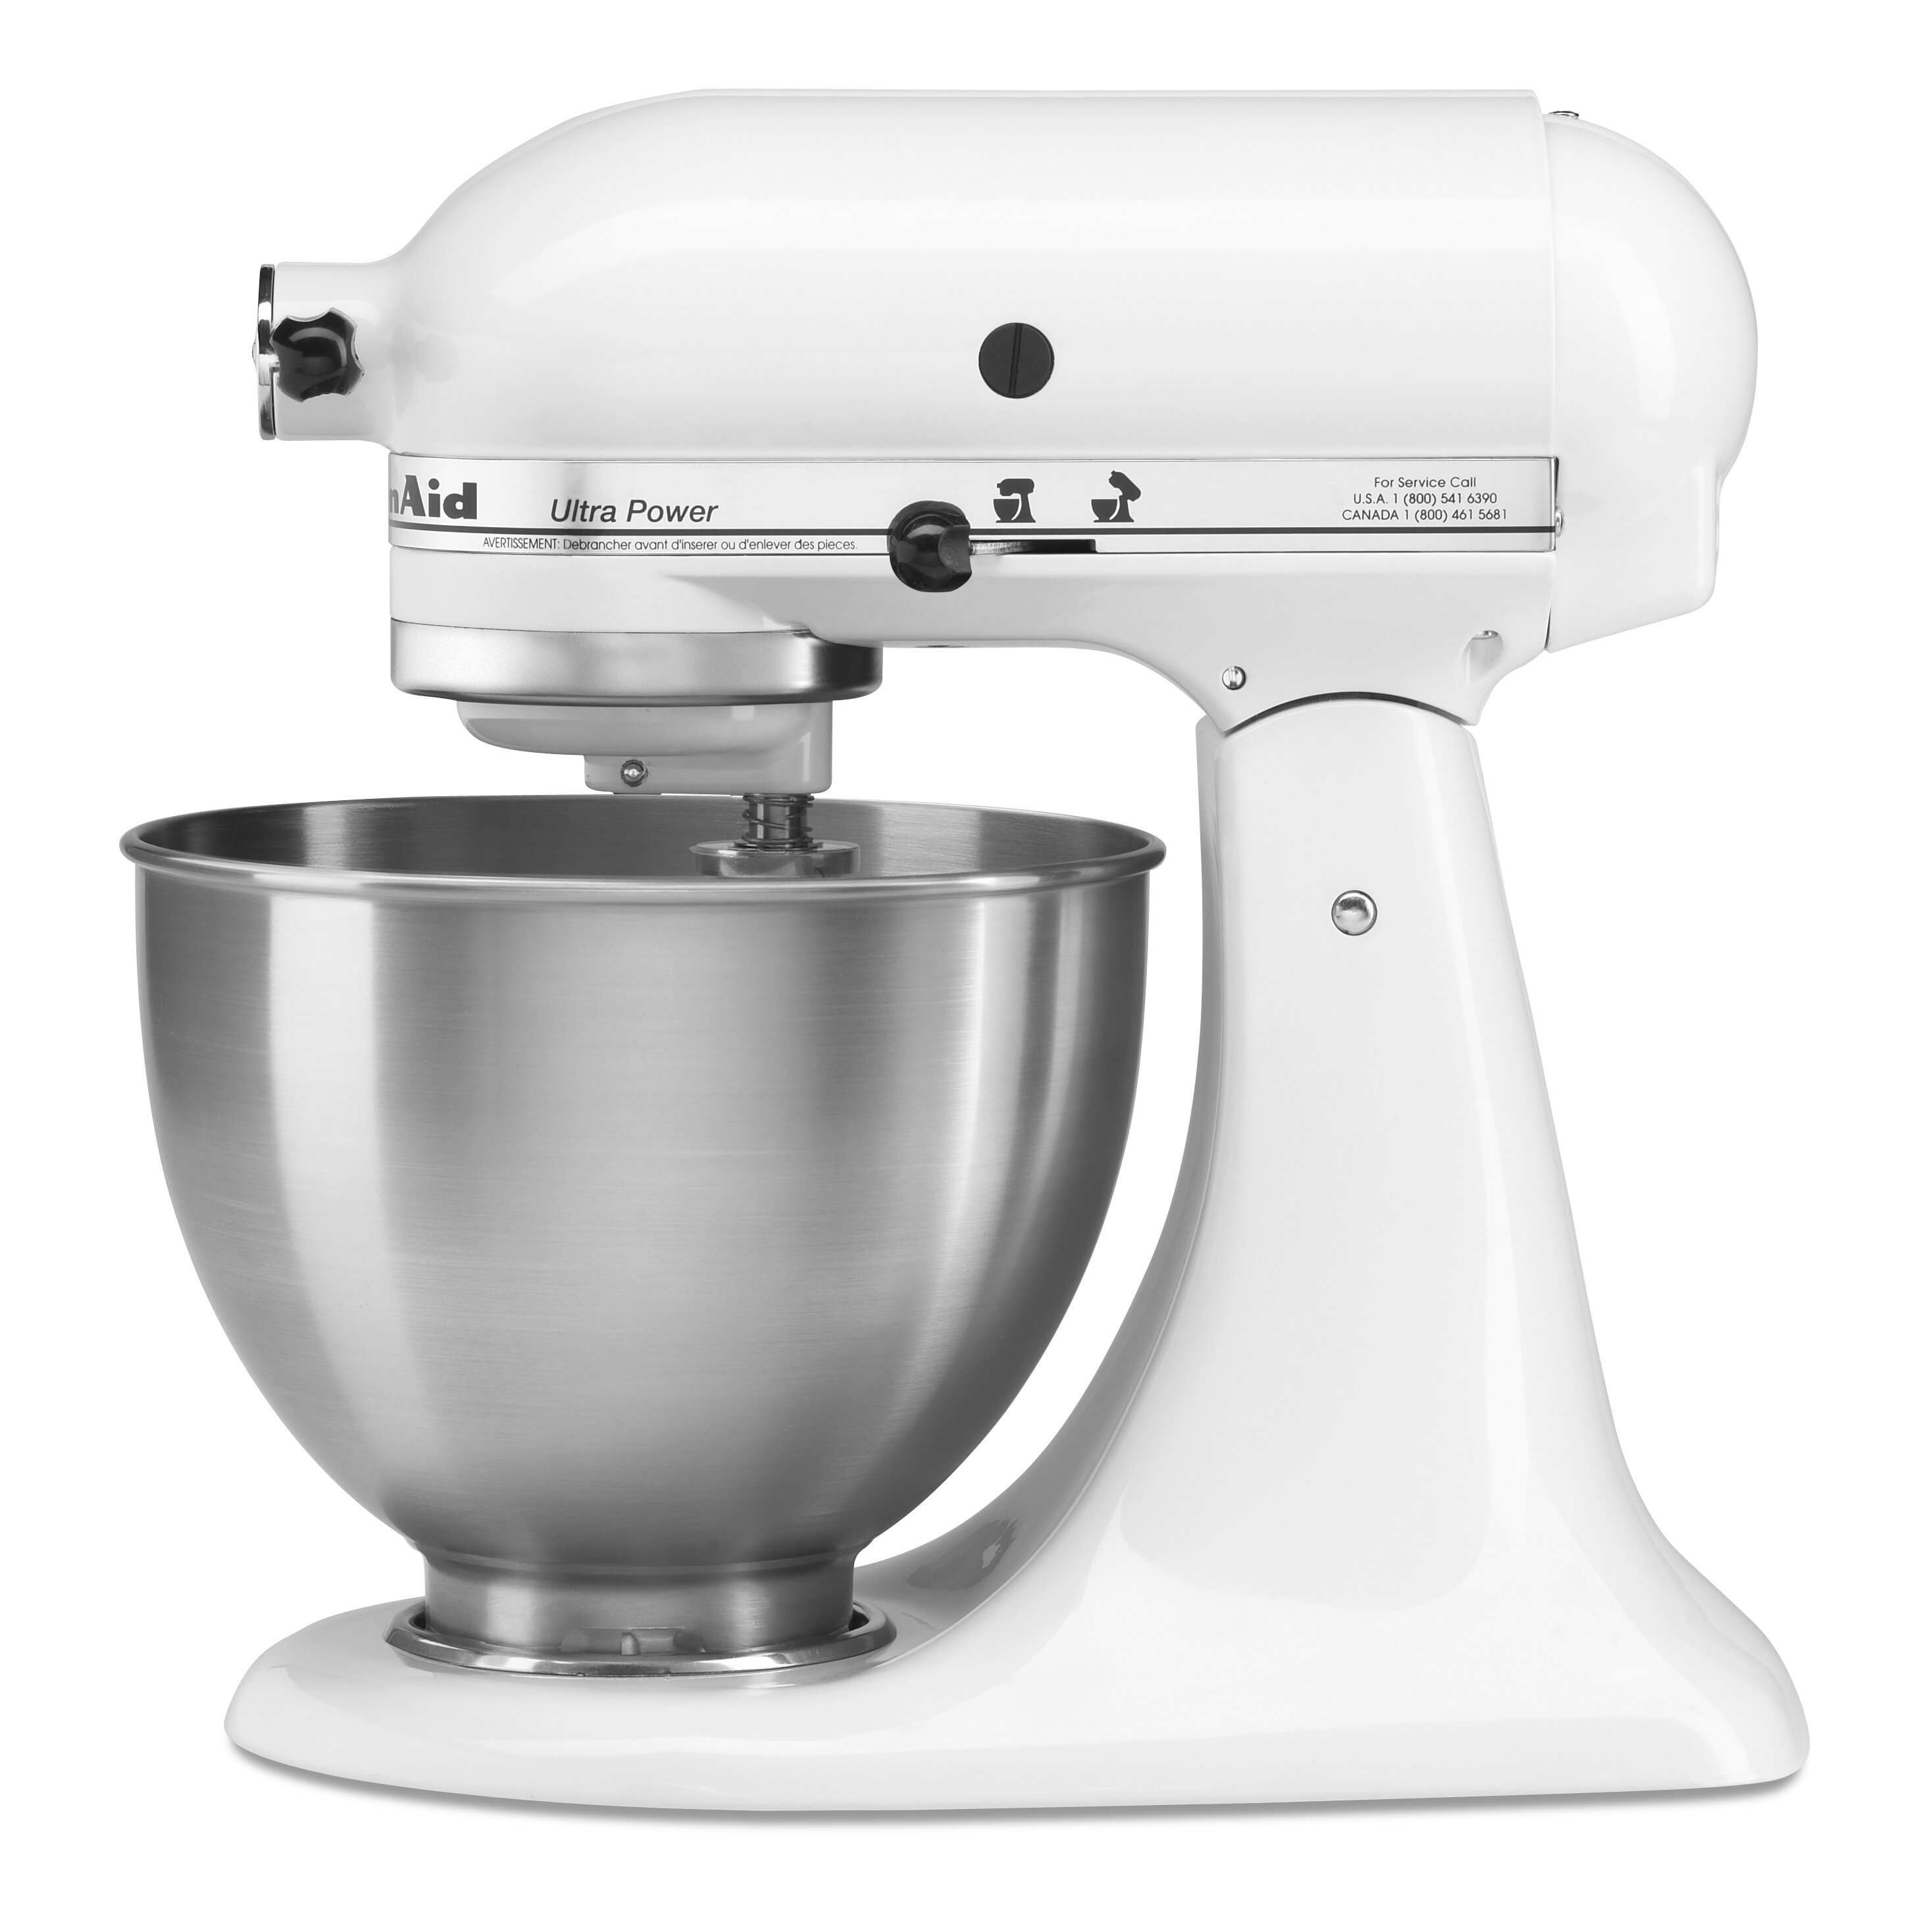 kitchenaid ultra power stand mixer manual motor replacement parts